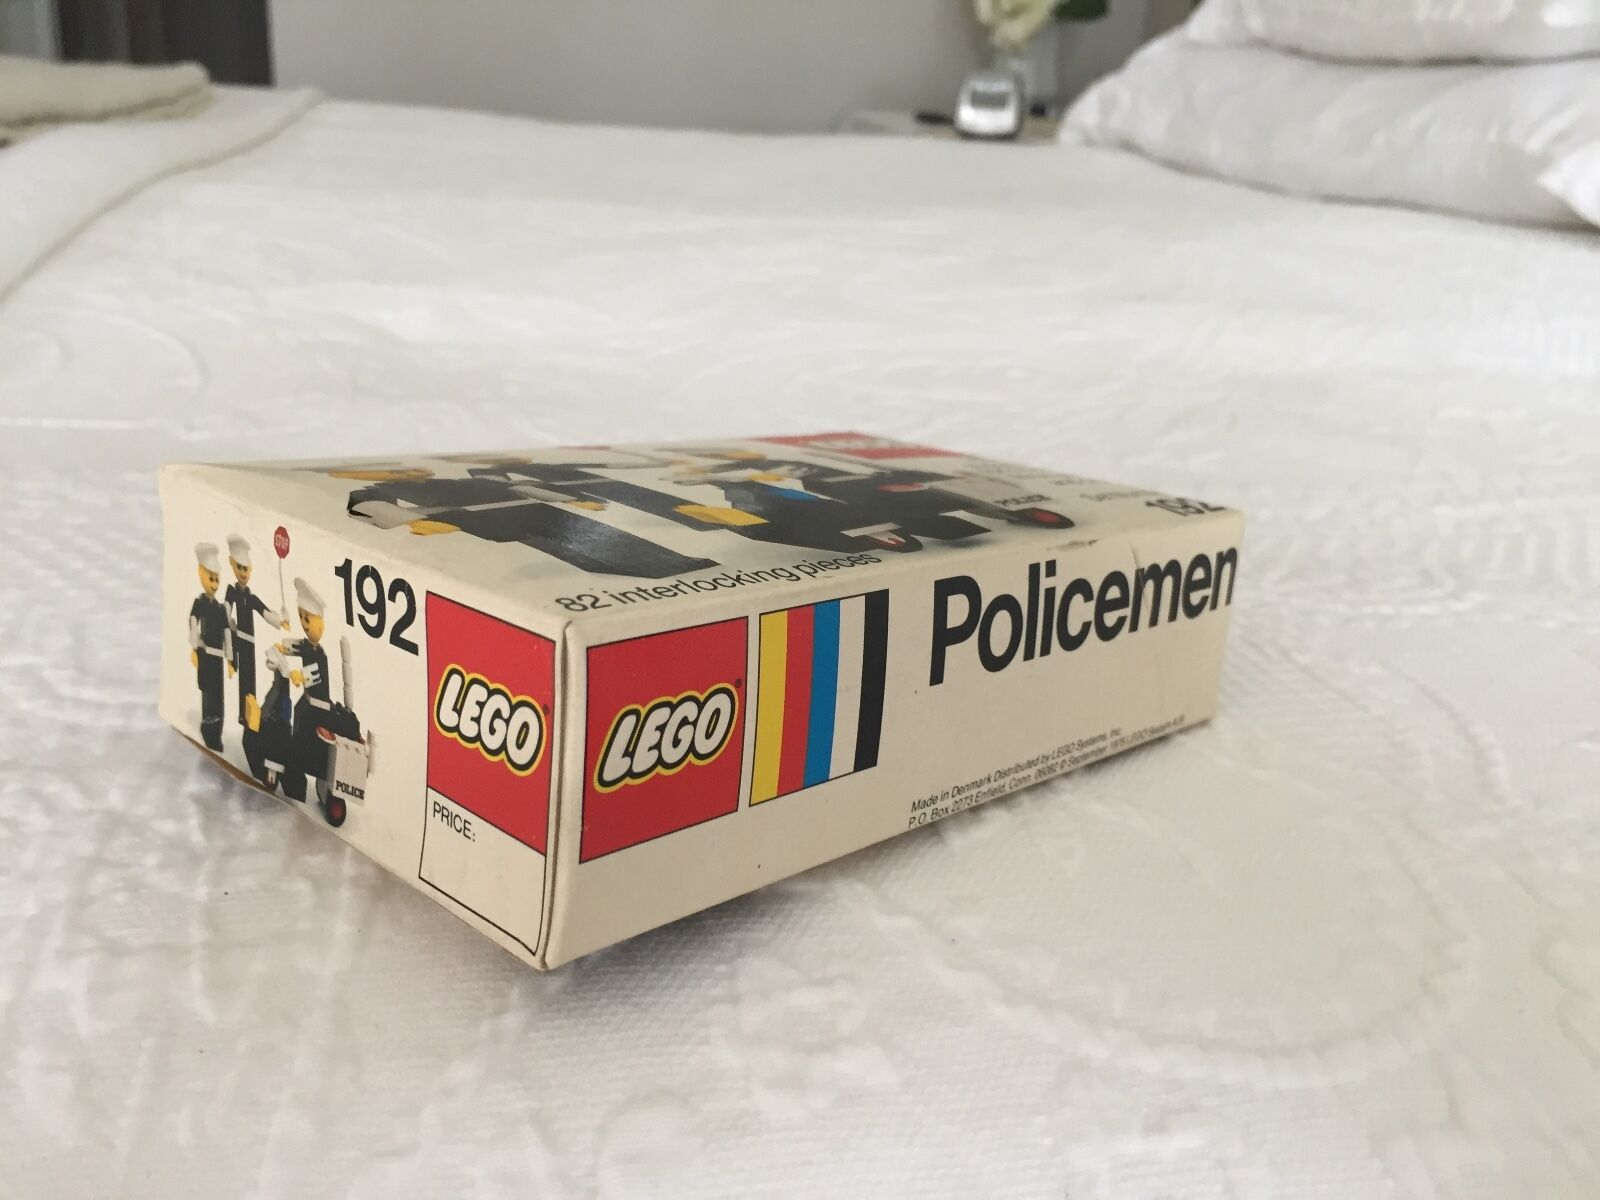 LEGO LEGO LEGO Policemen set 192 from 1976 b43d96